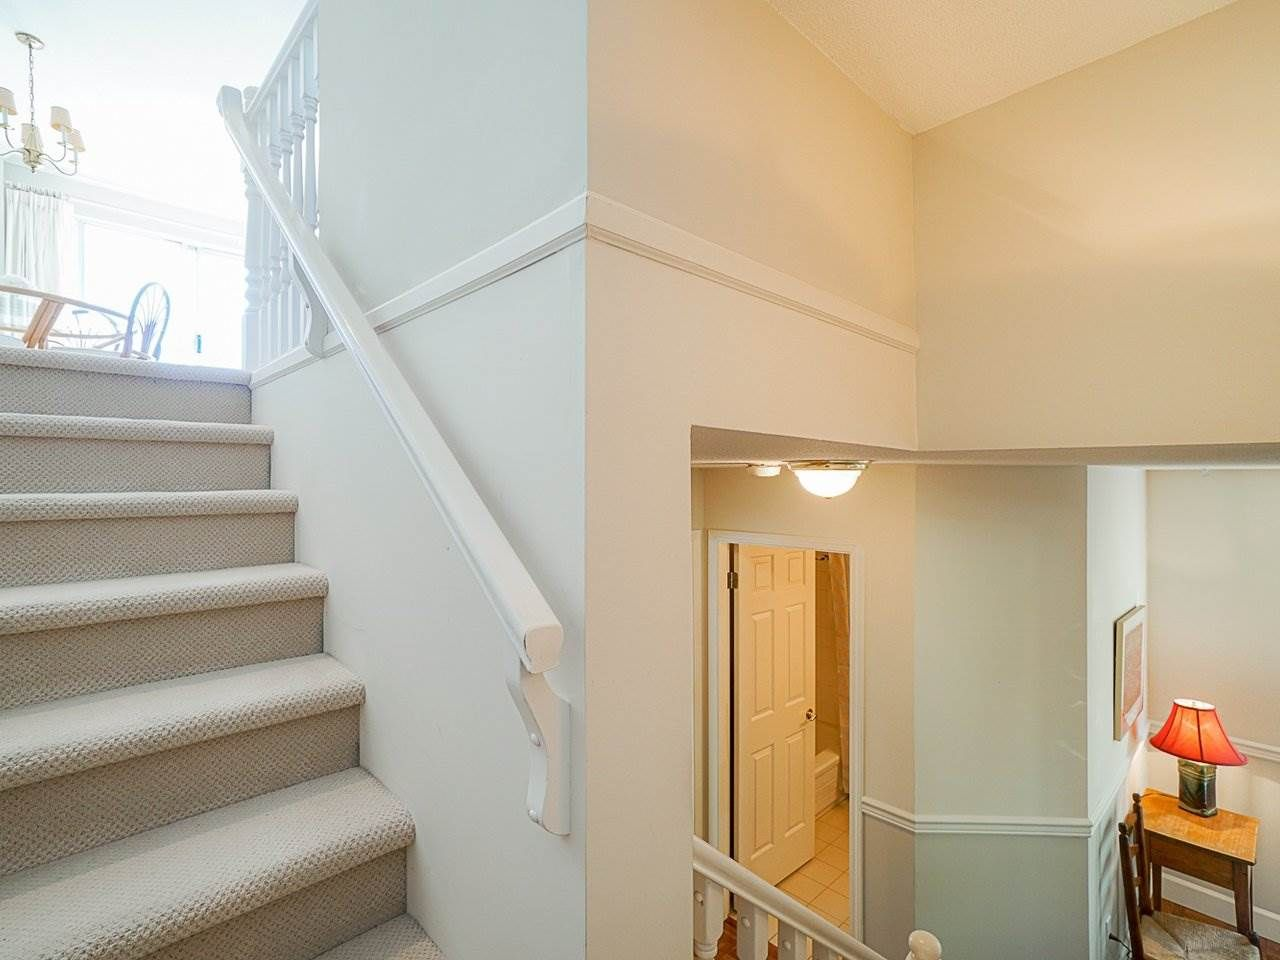 """Photo 17: Photos: 4 235 E KEITH Road in North Vancouver: Lower Lonsdale Townhouse for sale in """"Carriage Hill"""" : MLS®# R2471169"""